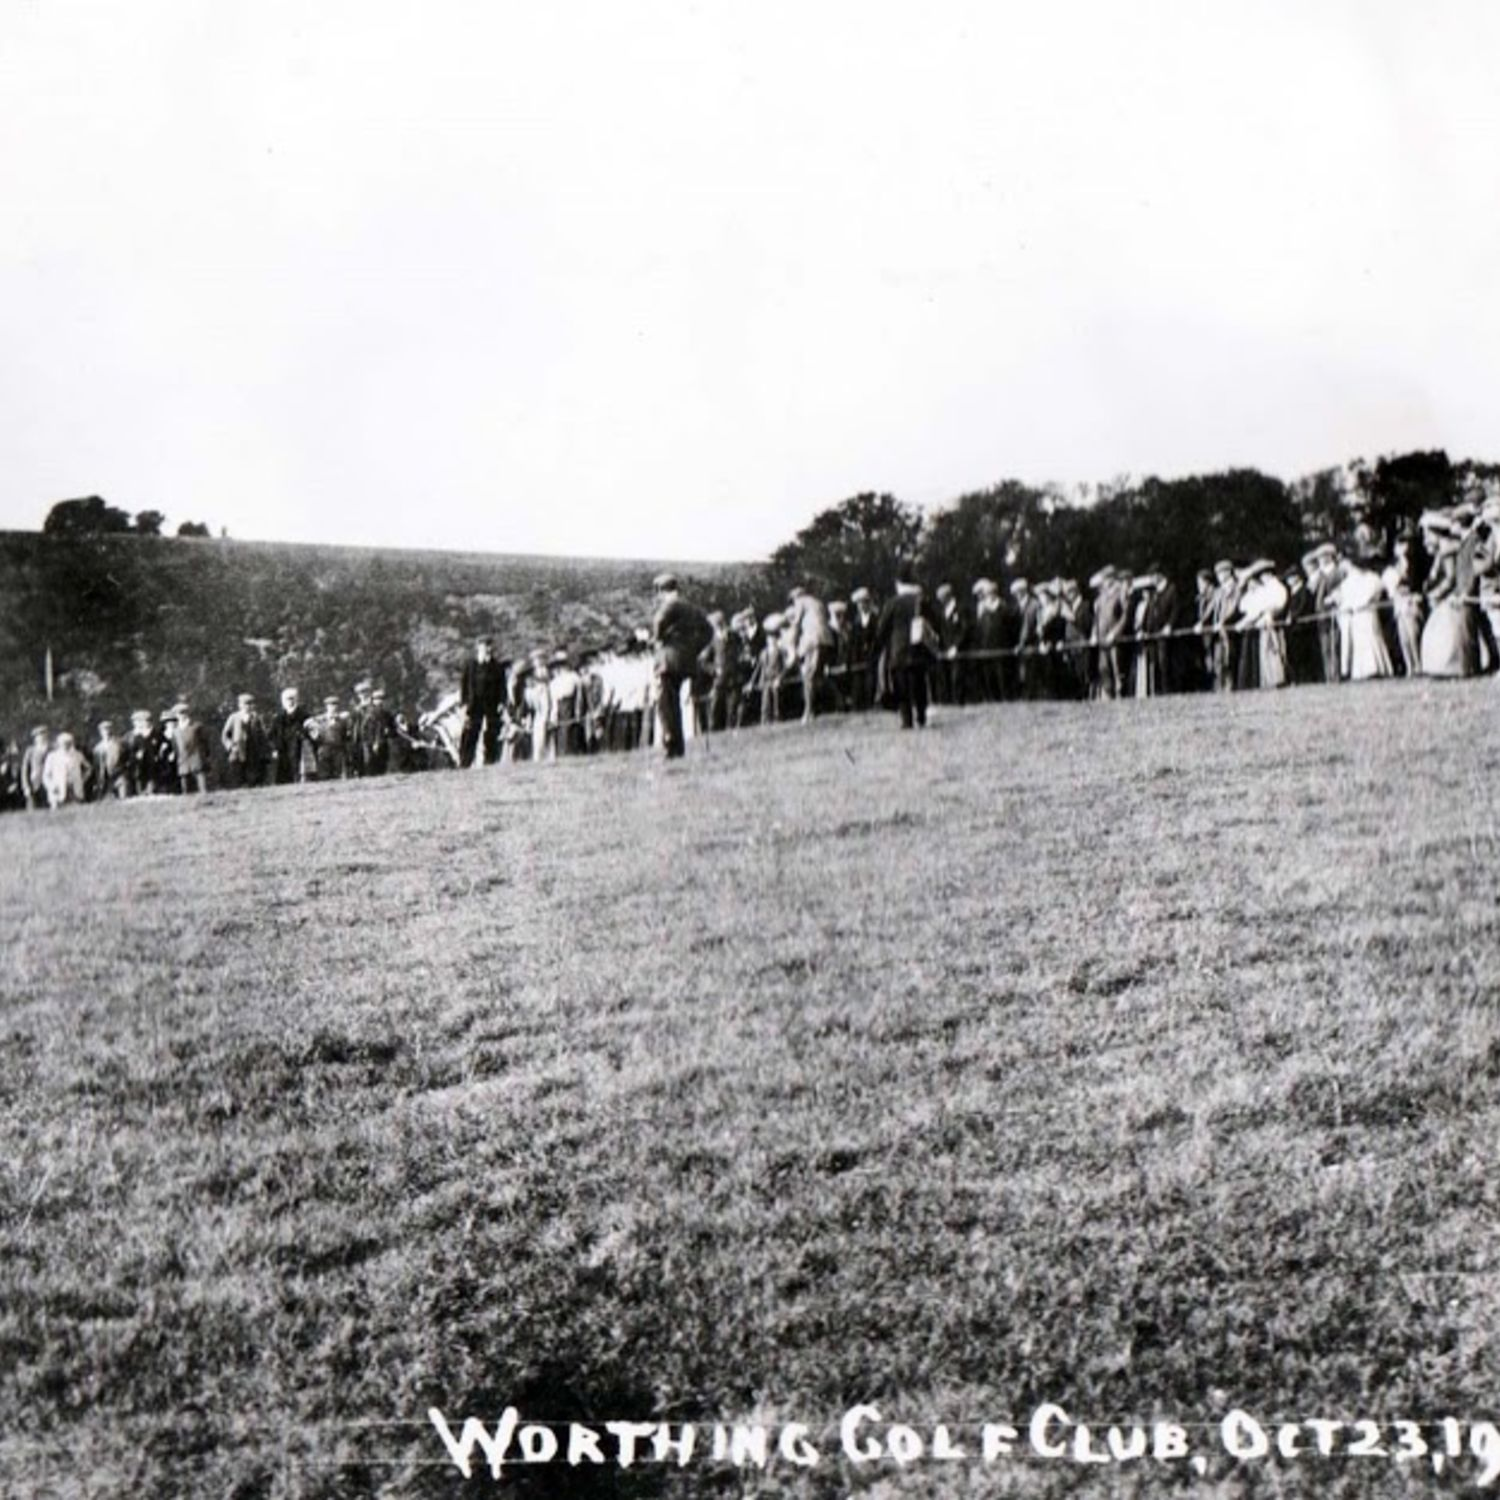 The 36 hole exhibition match was well supported on 23rd October 1906.